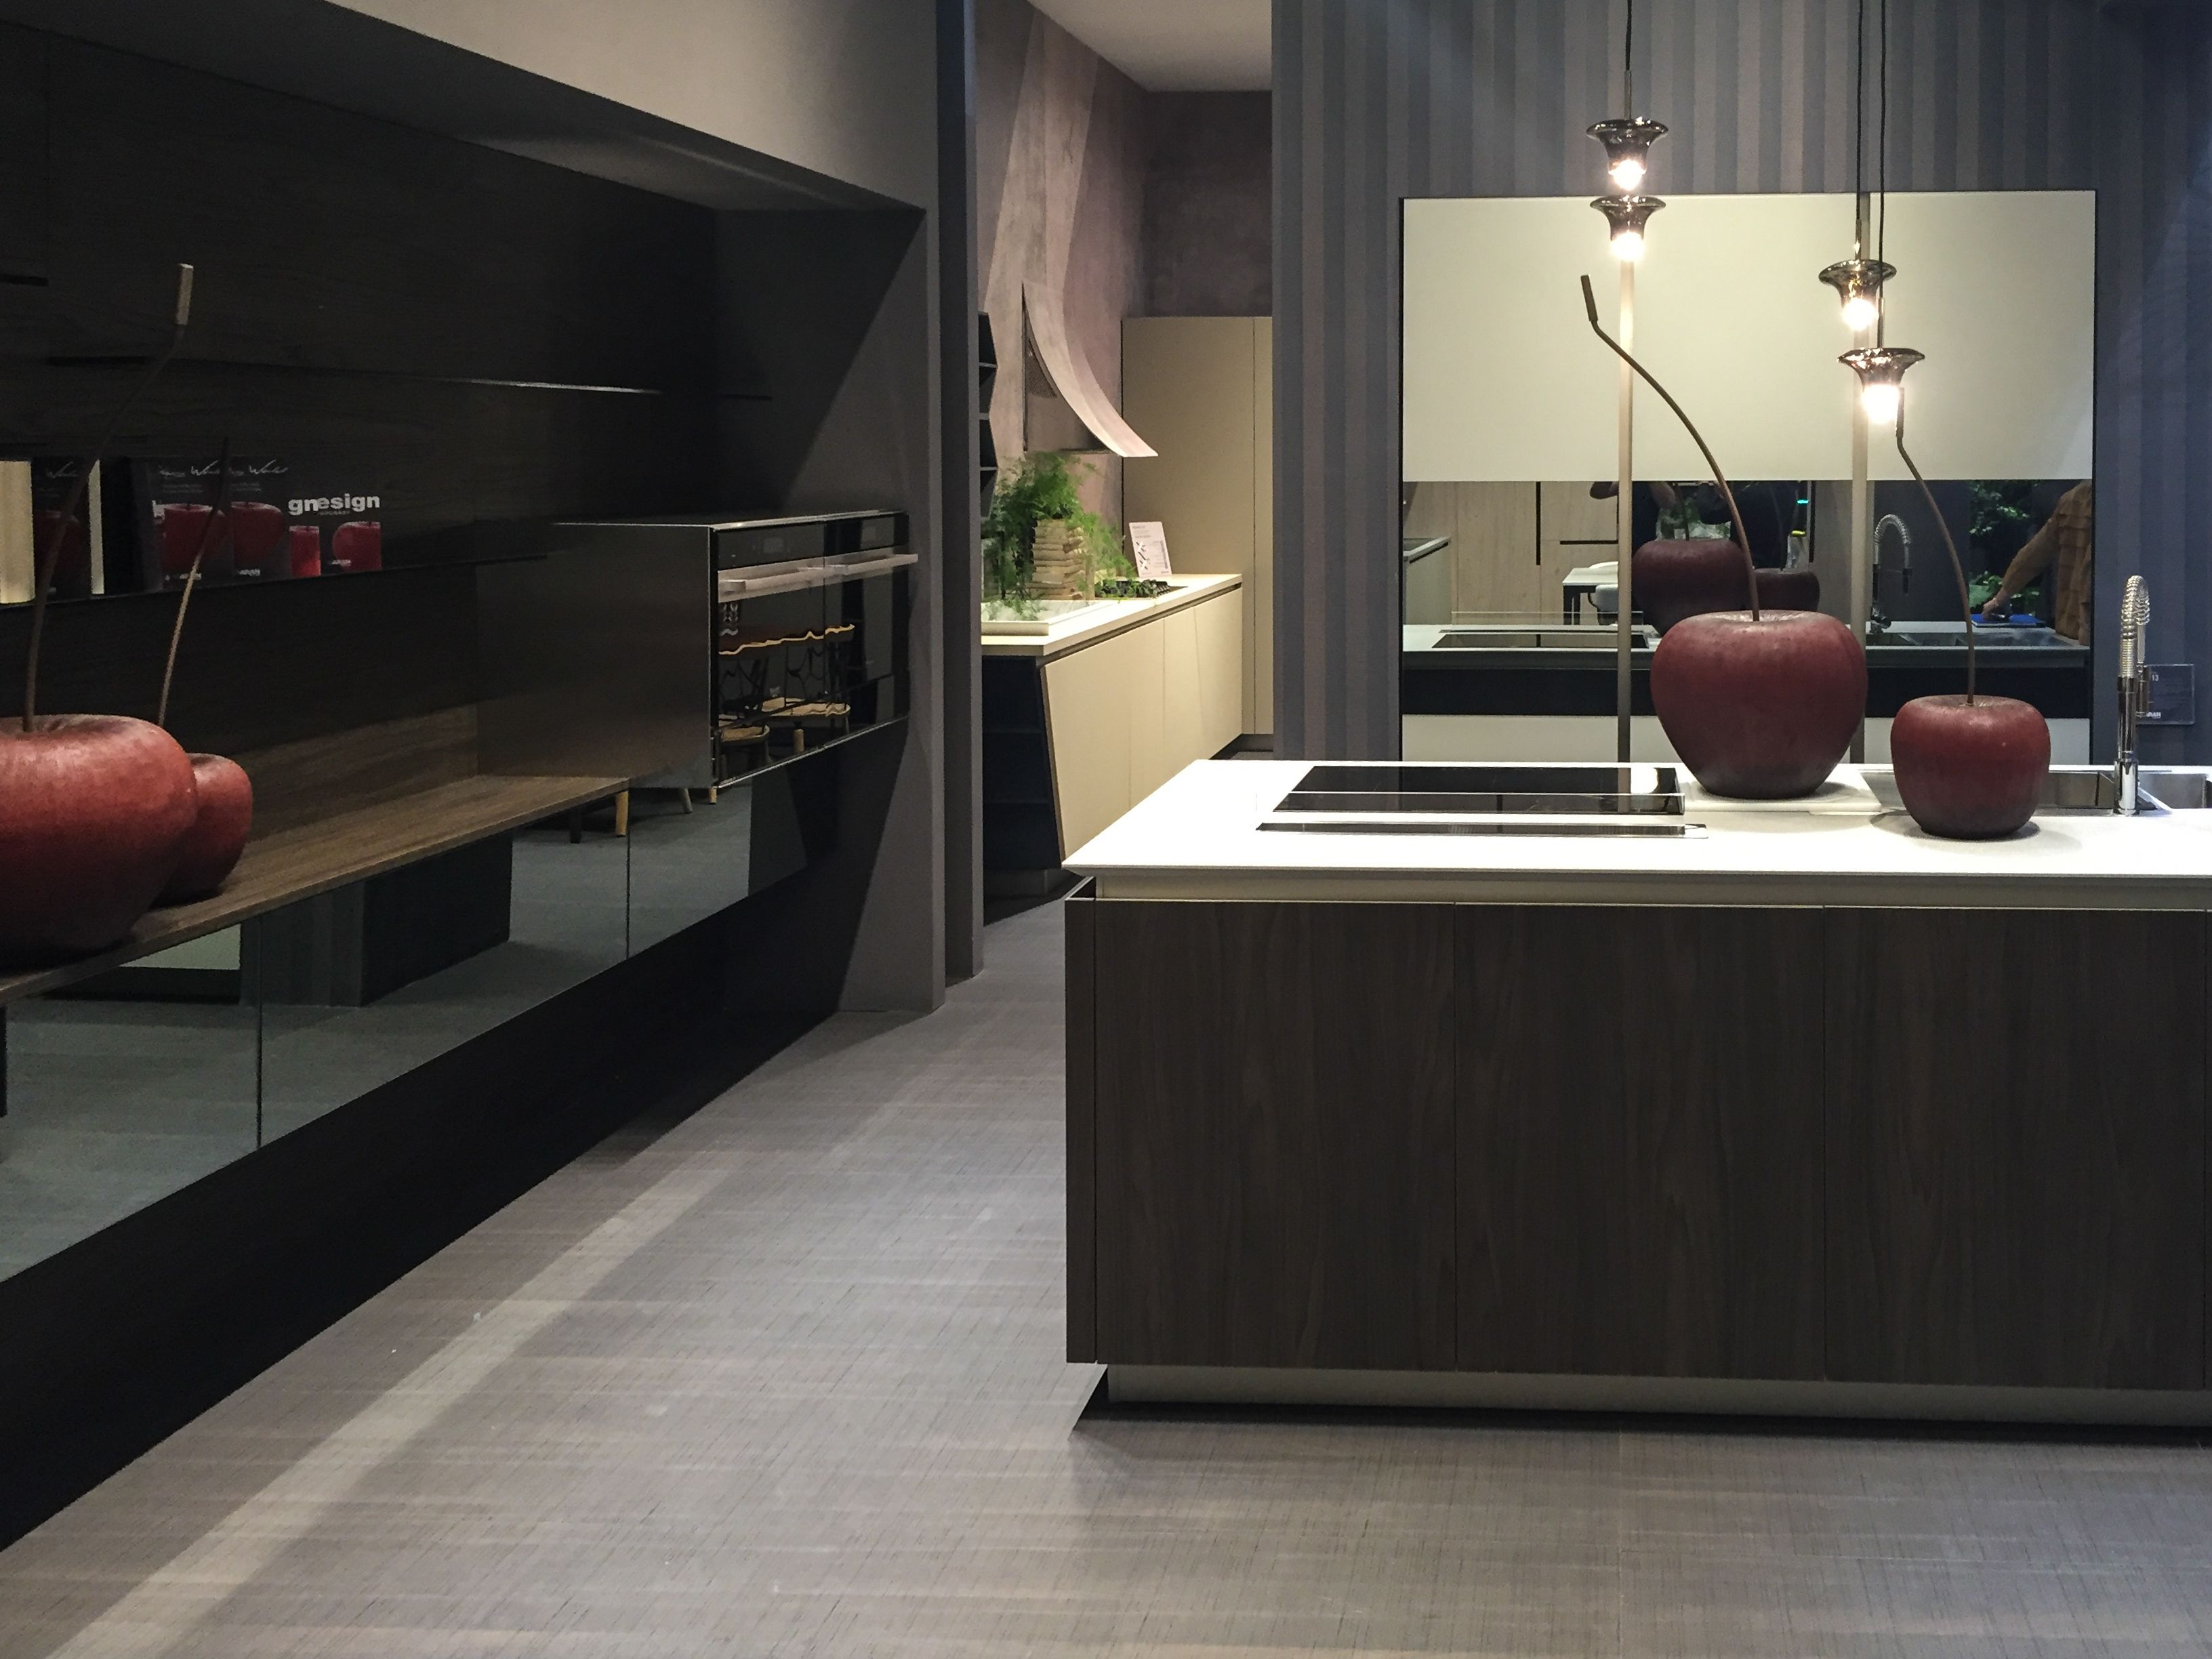 Cucine low cost milano detail of design kitchens snaidero way materia photo with cucine low - Cucine low cost ...